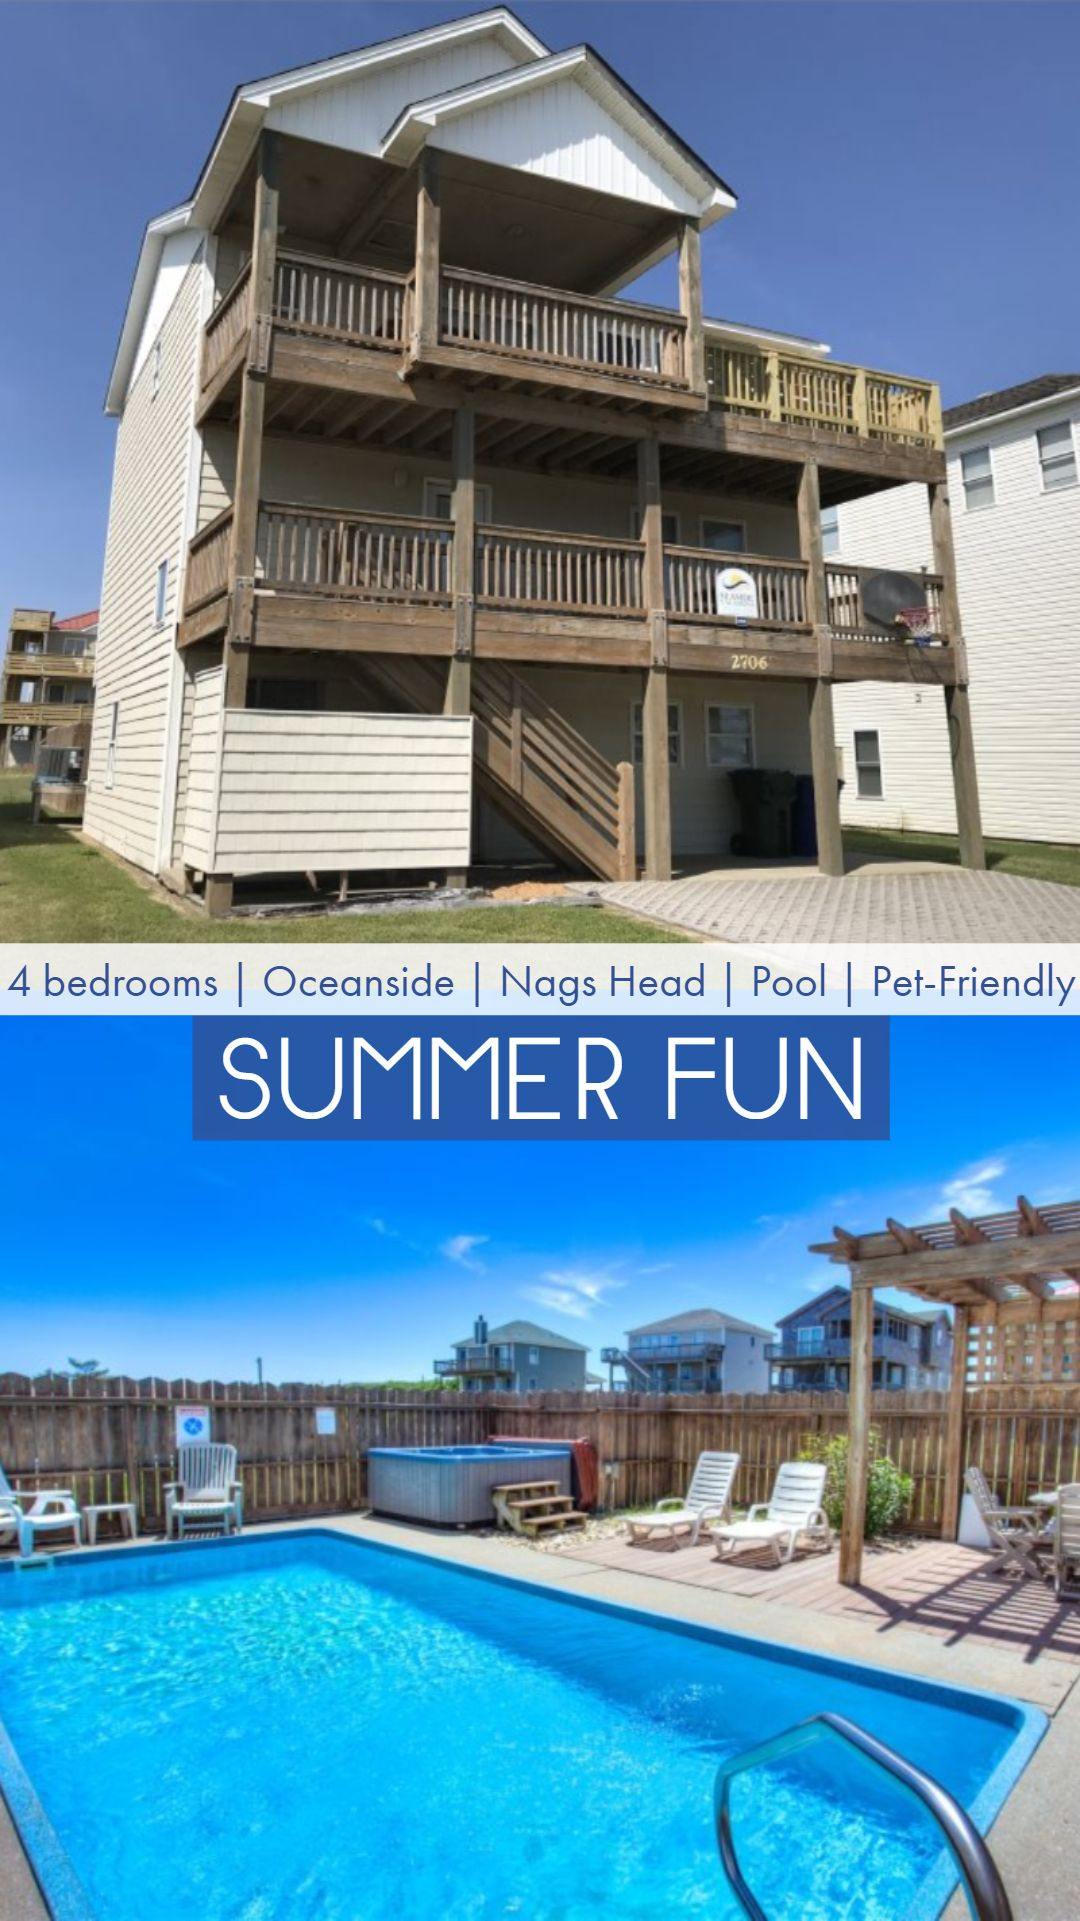 FEATURED Outer Banks, NC Rental: Planning a getaway? Book ...